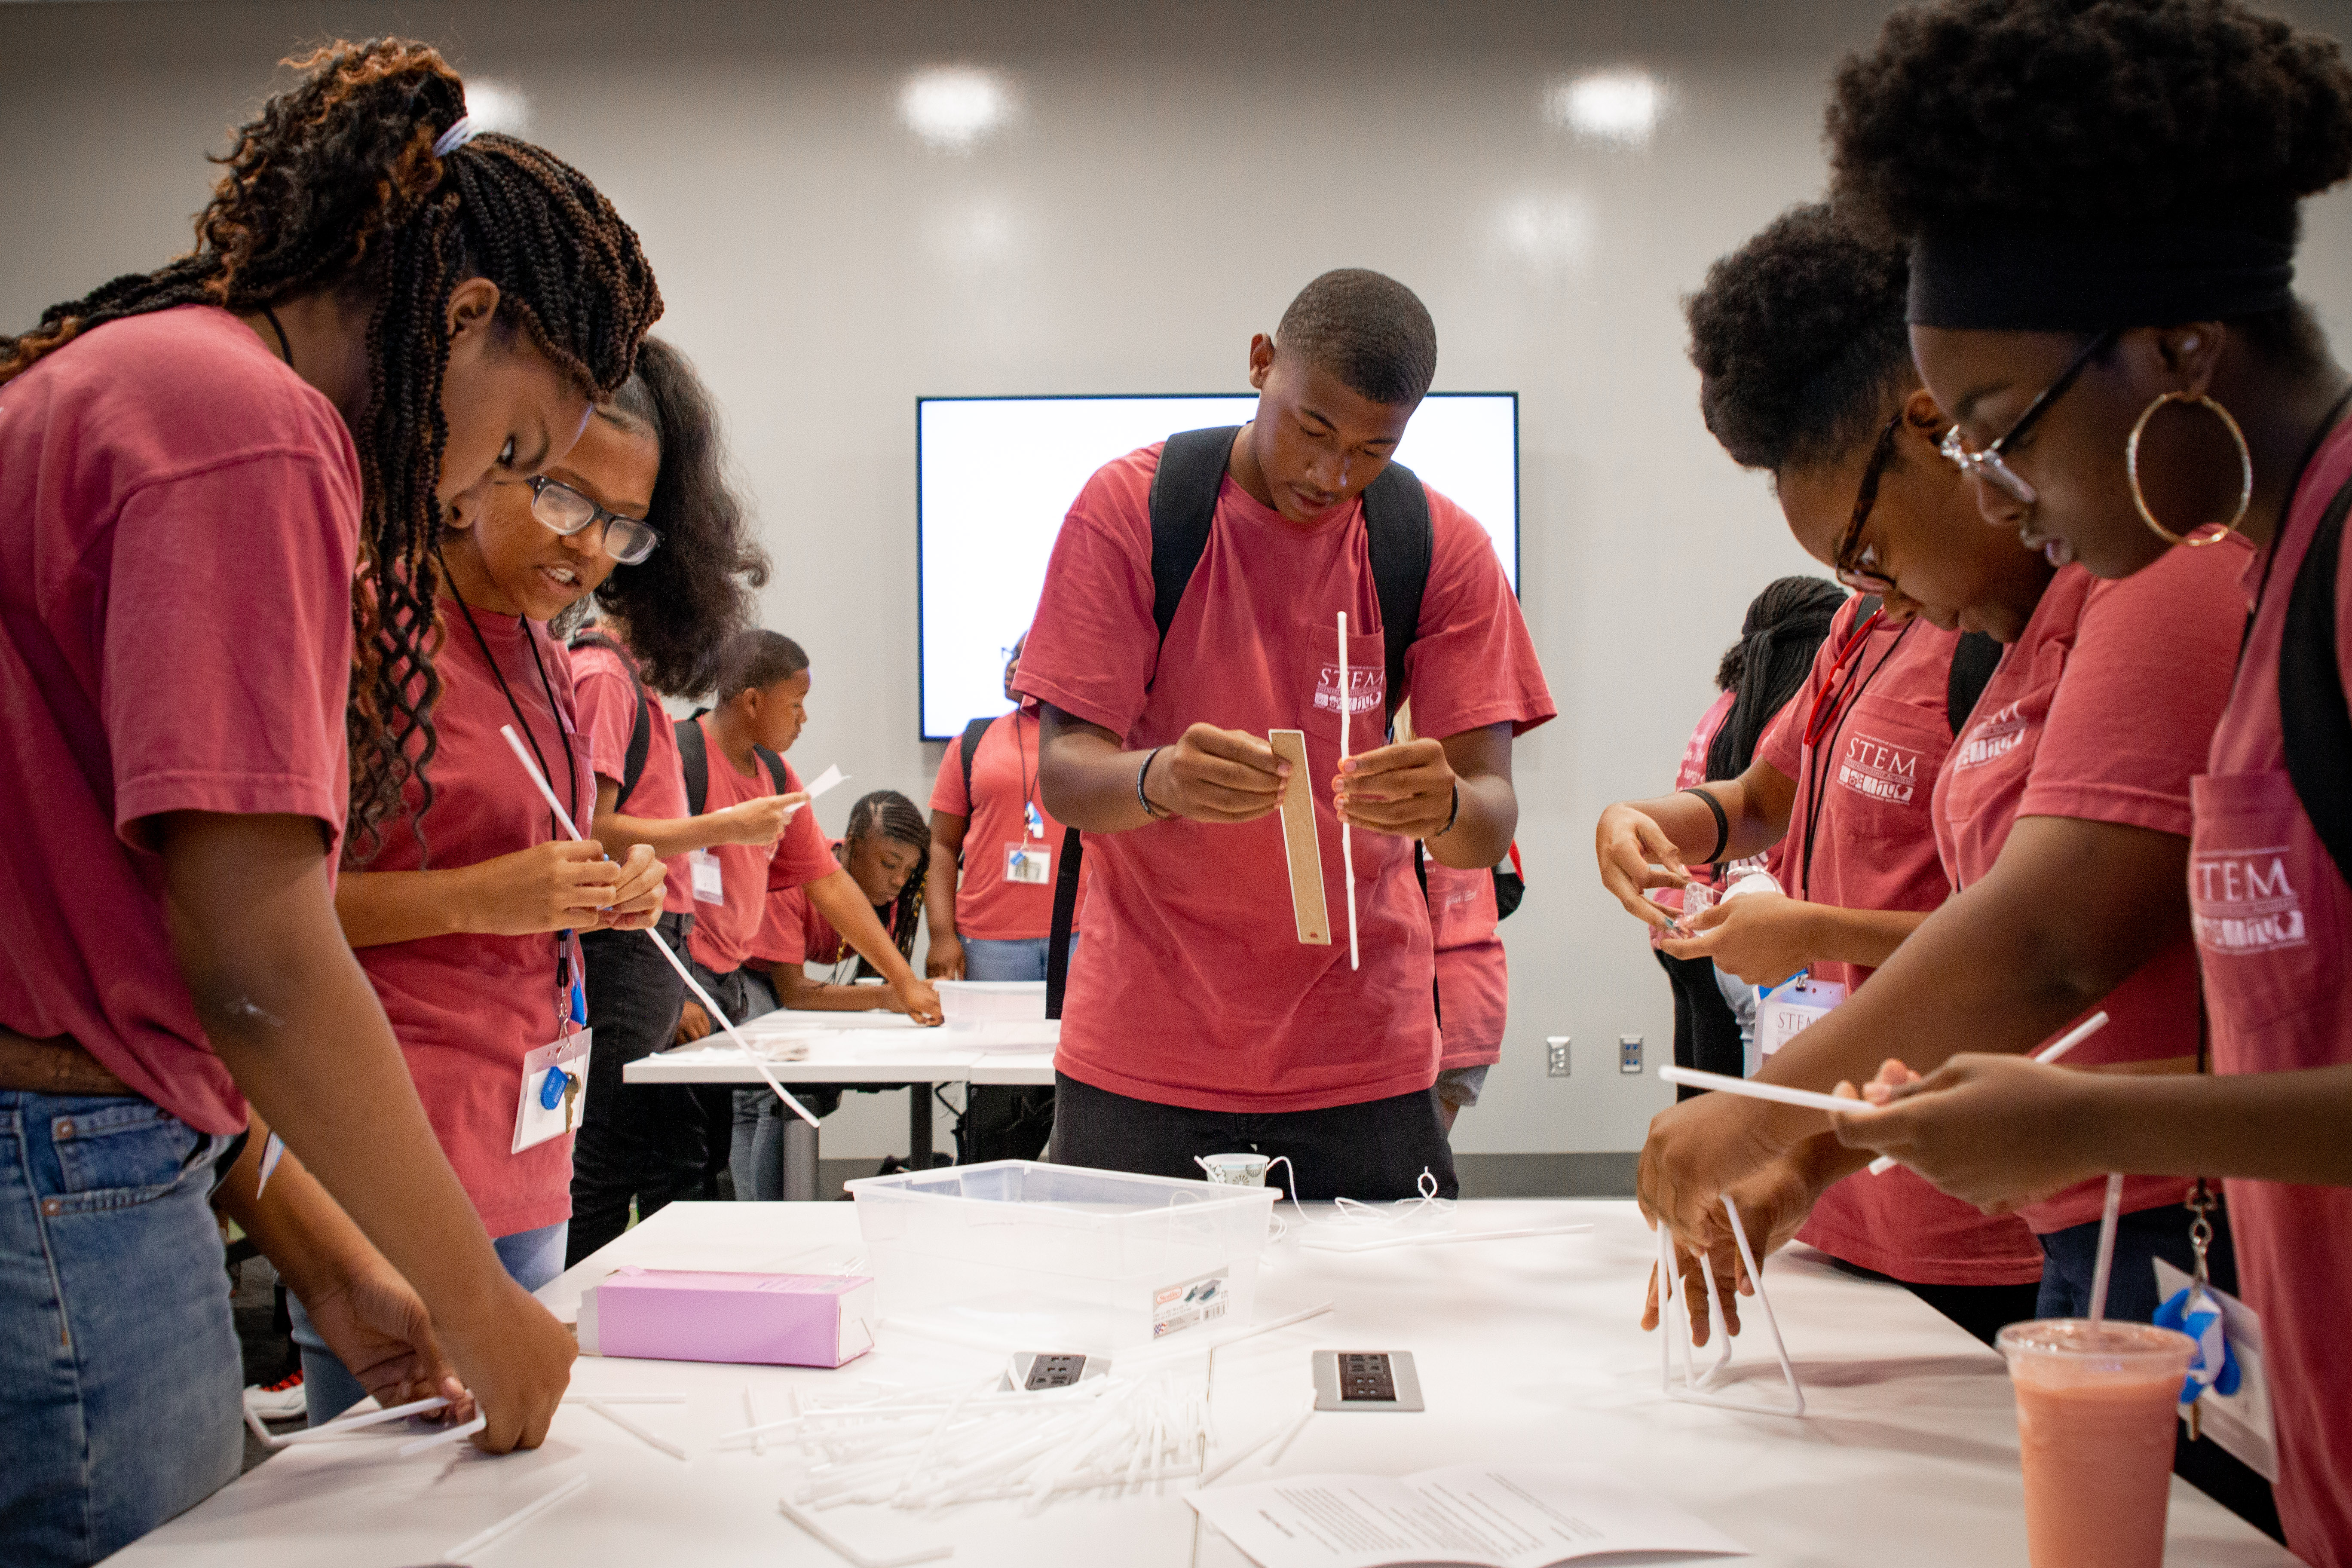 This camp offers a fun and innovative hands-on approach to help students discover Science, Technology, Engineering and Math in the work place and introduce them to Entrepreneurship concepts that are essential for business start-up.